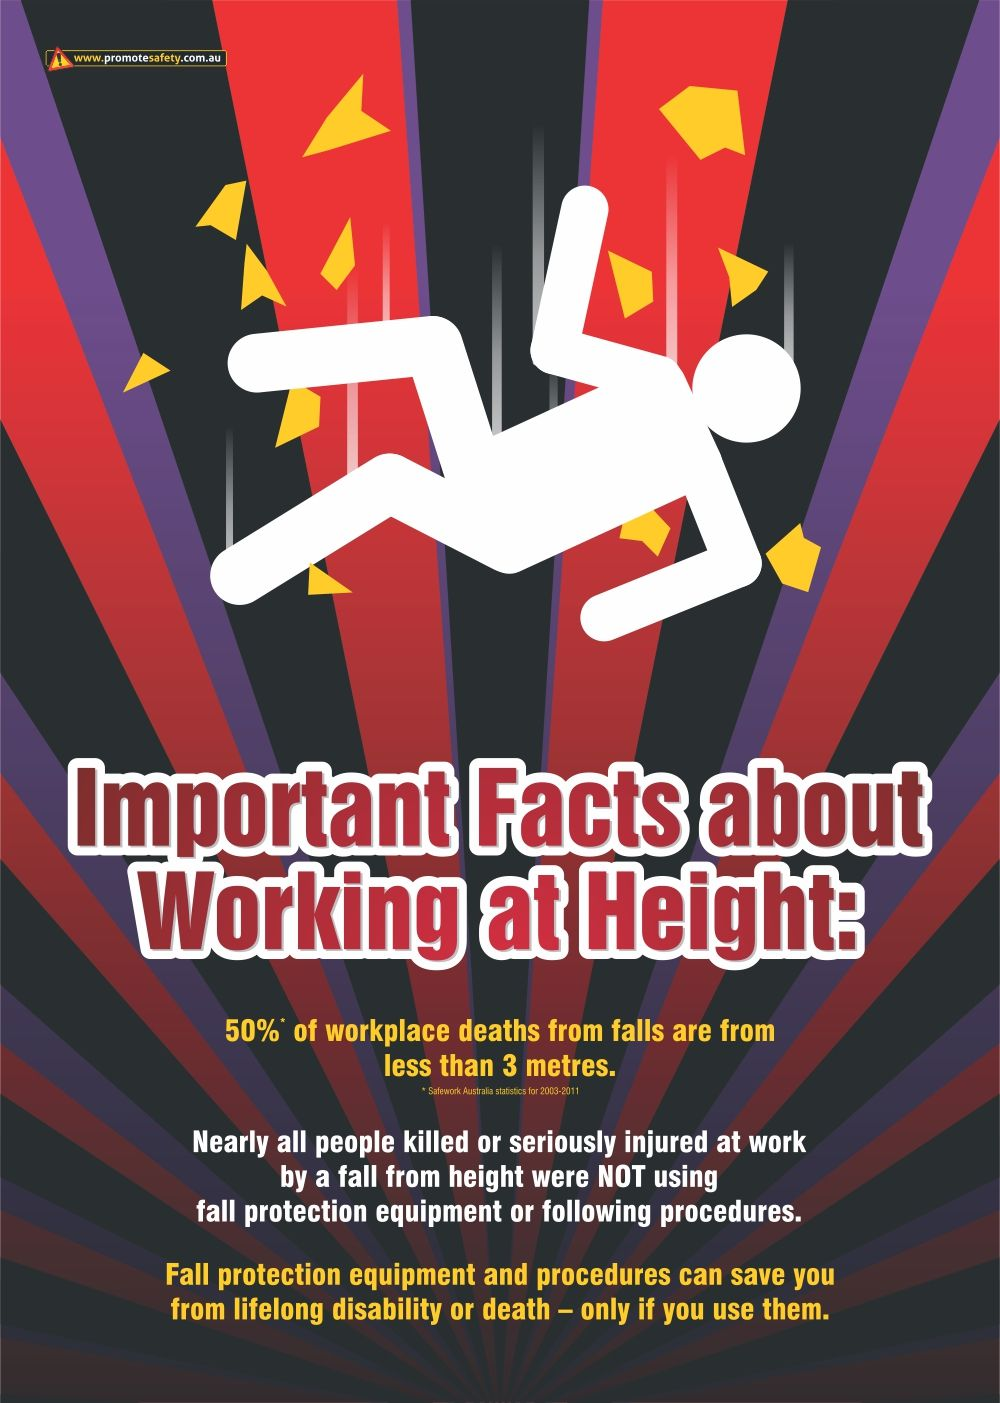 Falls from height is one of the top causes of workplace